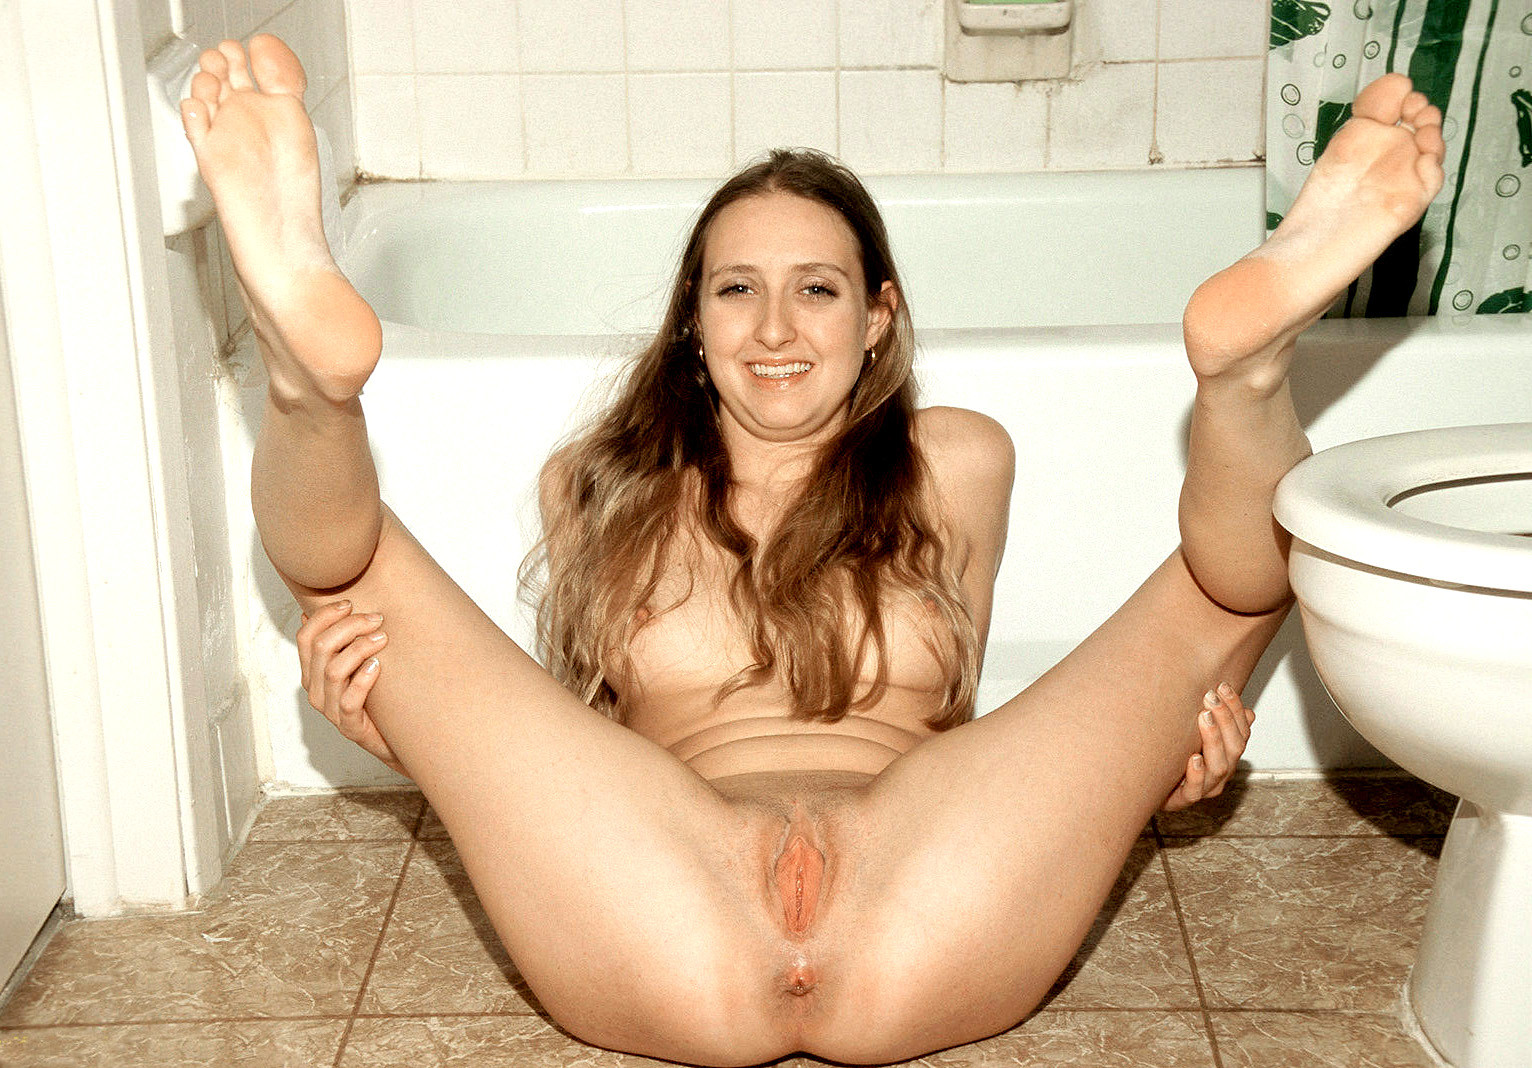 Wide spread nude girl not take